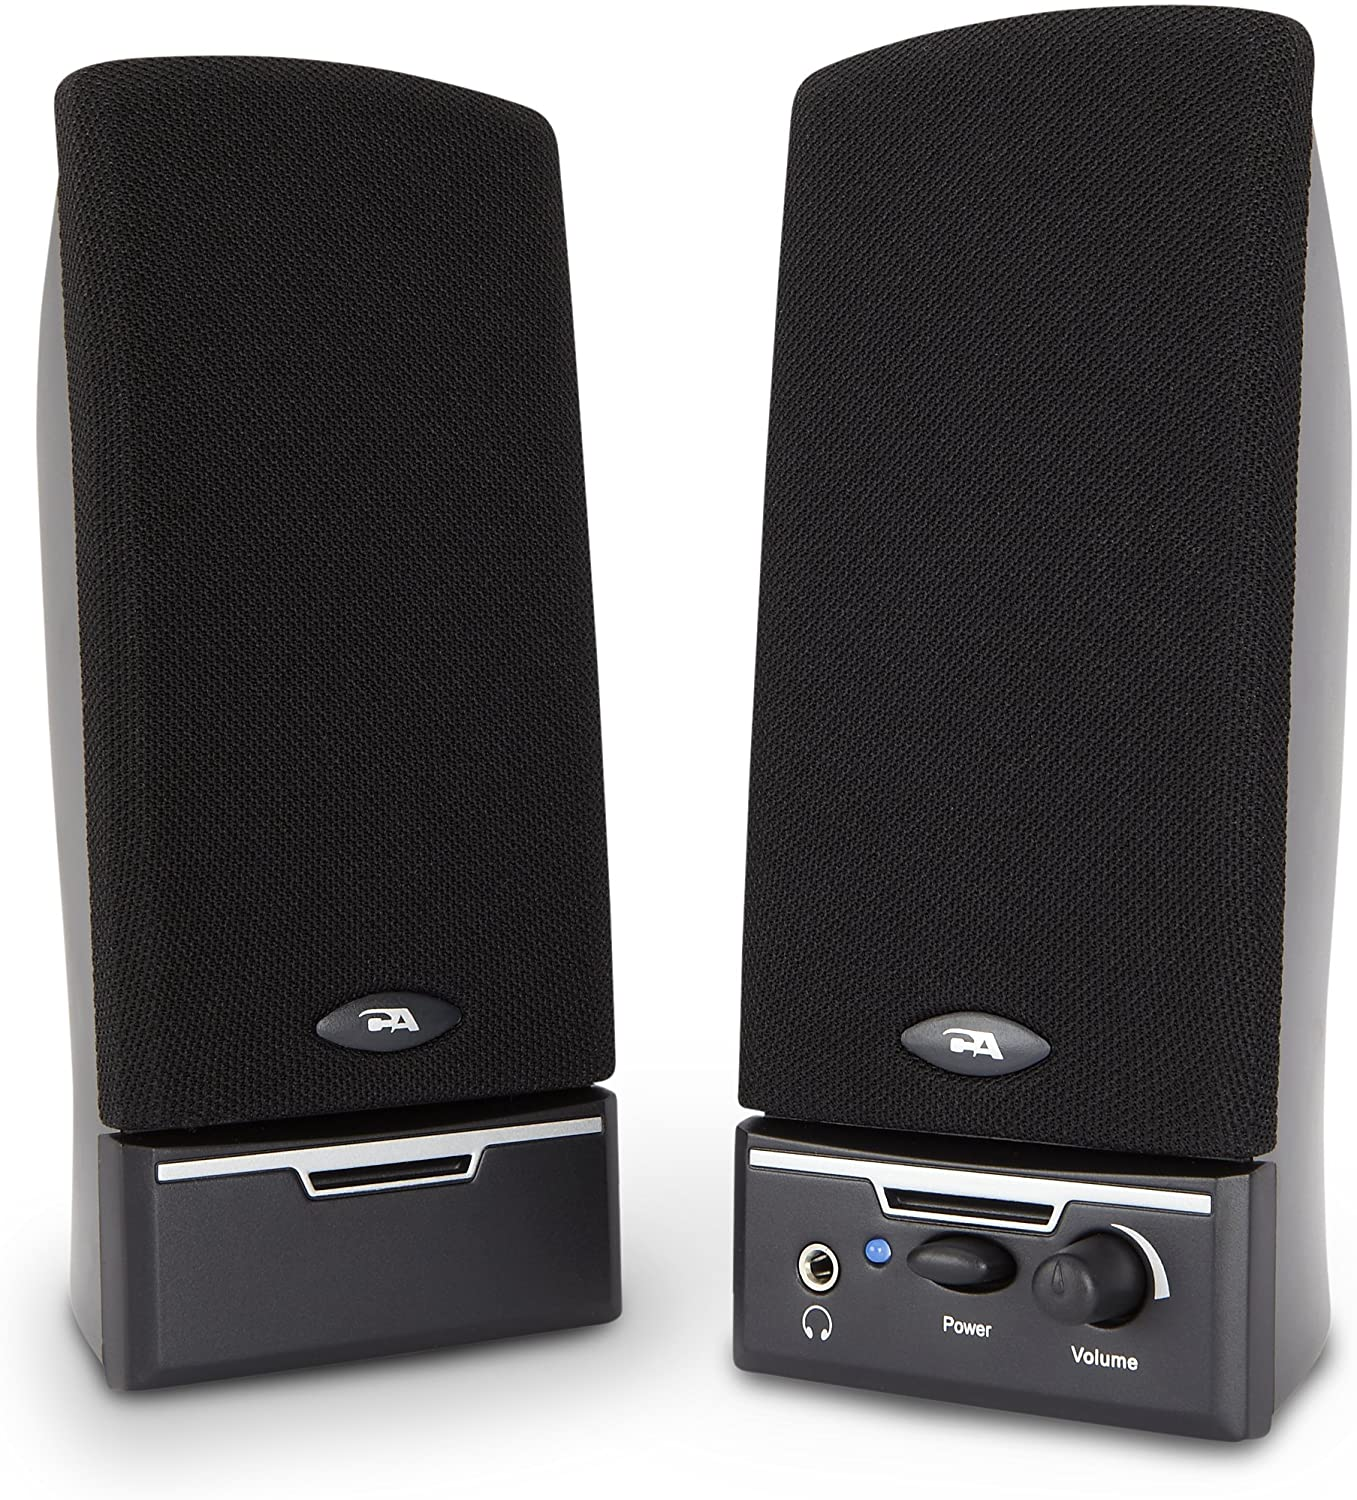 Cyber Acoustics 2.0 Amplified Speaker System Delivering Quality Audio (CA-2014WB)